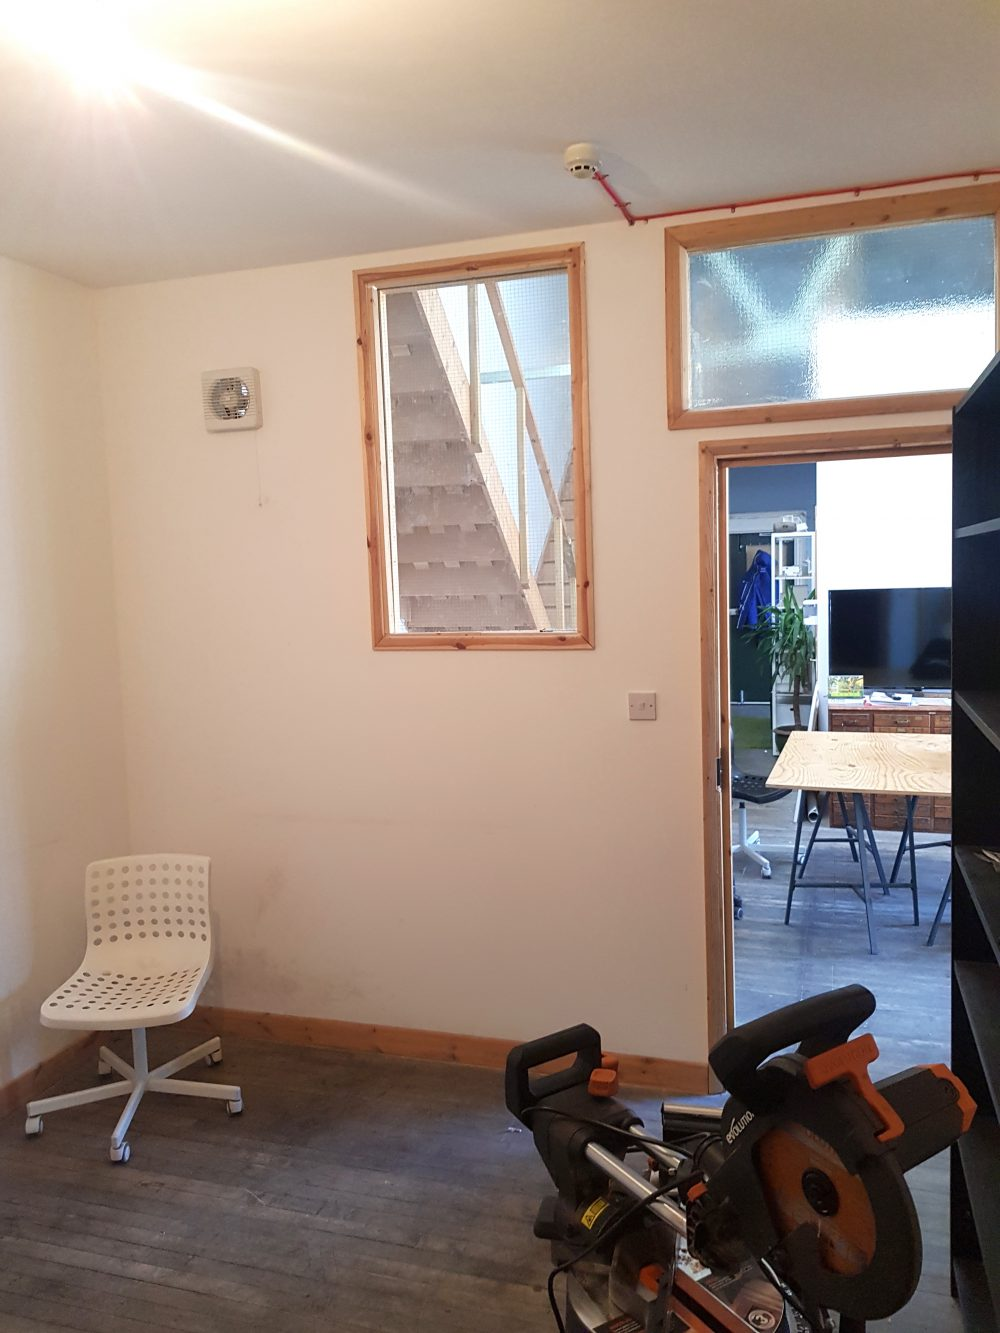 Light indurstrial unit to rent in N15 Markfield rd Gaunson House Studio B and C PIc4